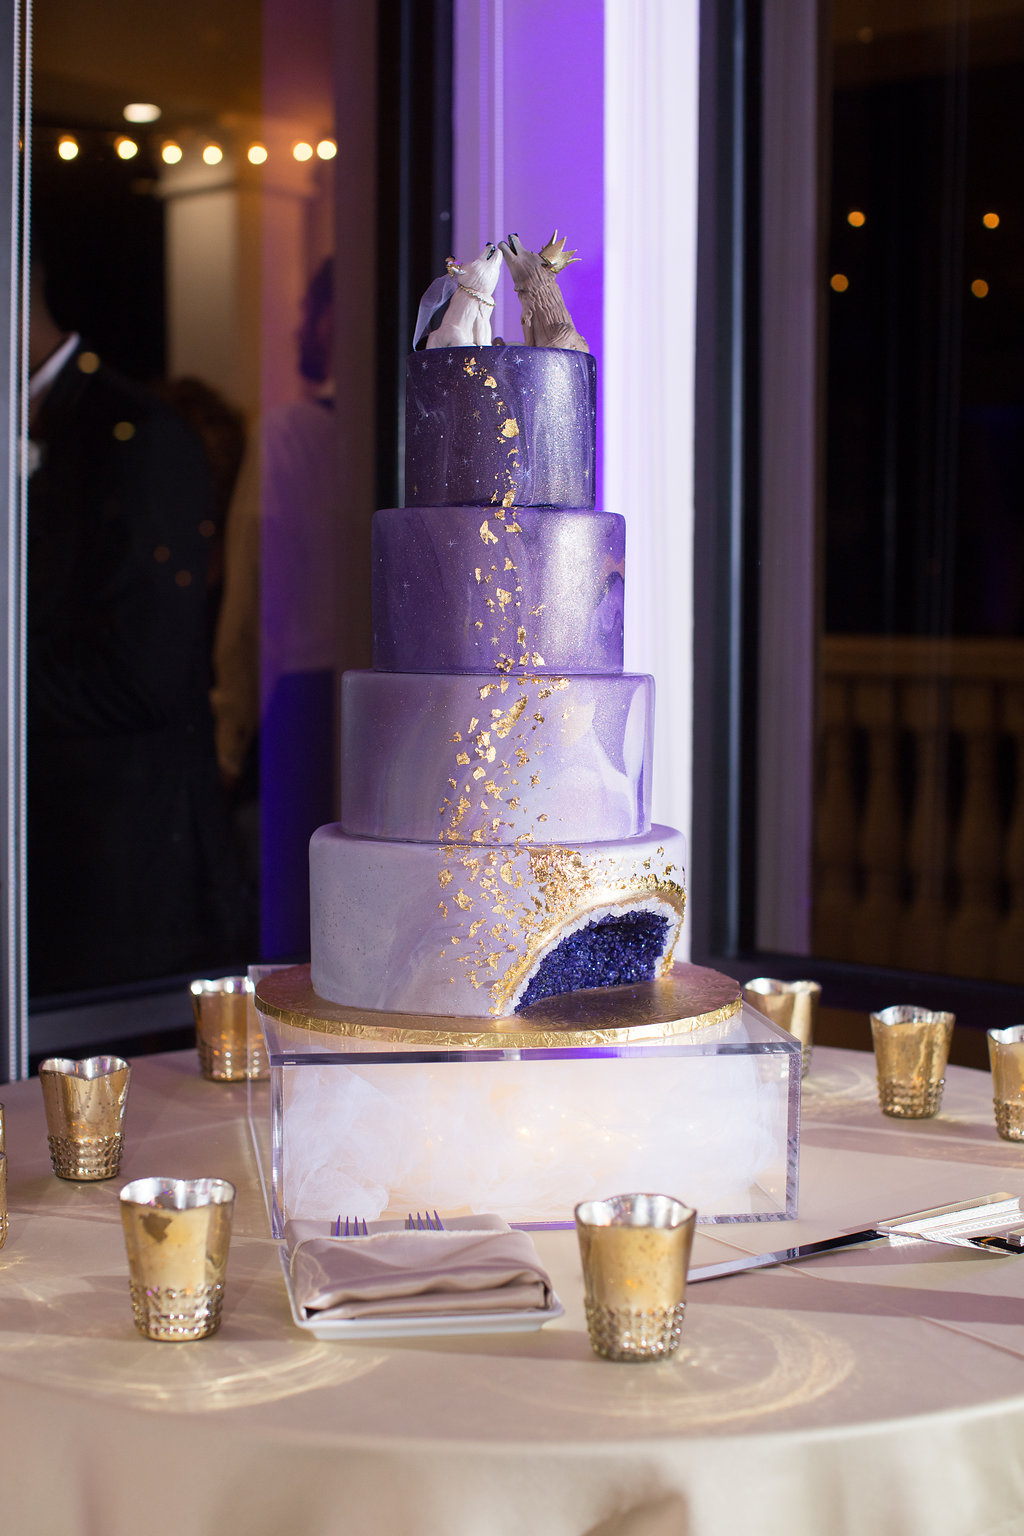 Four Tier Marble Ombre Enchanted Magical Purple and Champagne Cake and Amethyst Geode, Gold Leafing Painted Cascading Stars and Shimmer Airbrushing with Custom Wolf and Fox Cake Topper on Acrylic Cake Stand and Gold Votive Candle Holders on Champagne Tablecloth   Clearwater Beach Wedding Venue Feather Sound Country Club   St. Petersburg Wedding Baker The Artistic Whisk